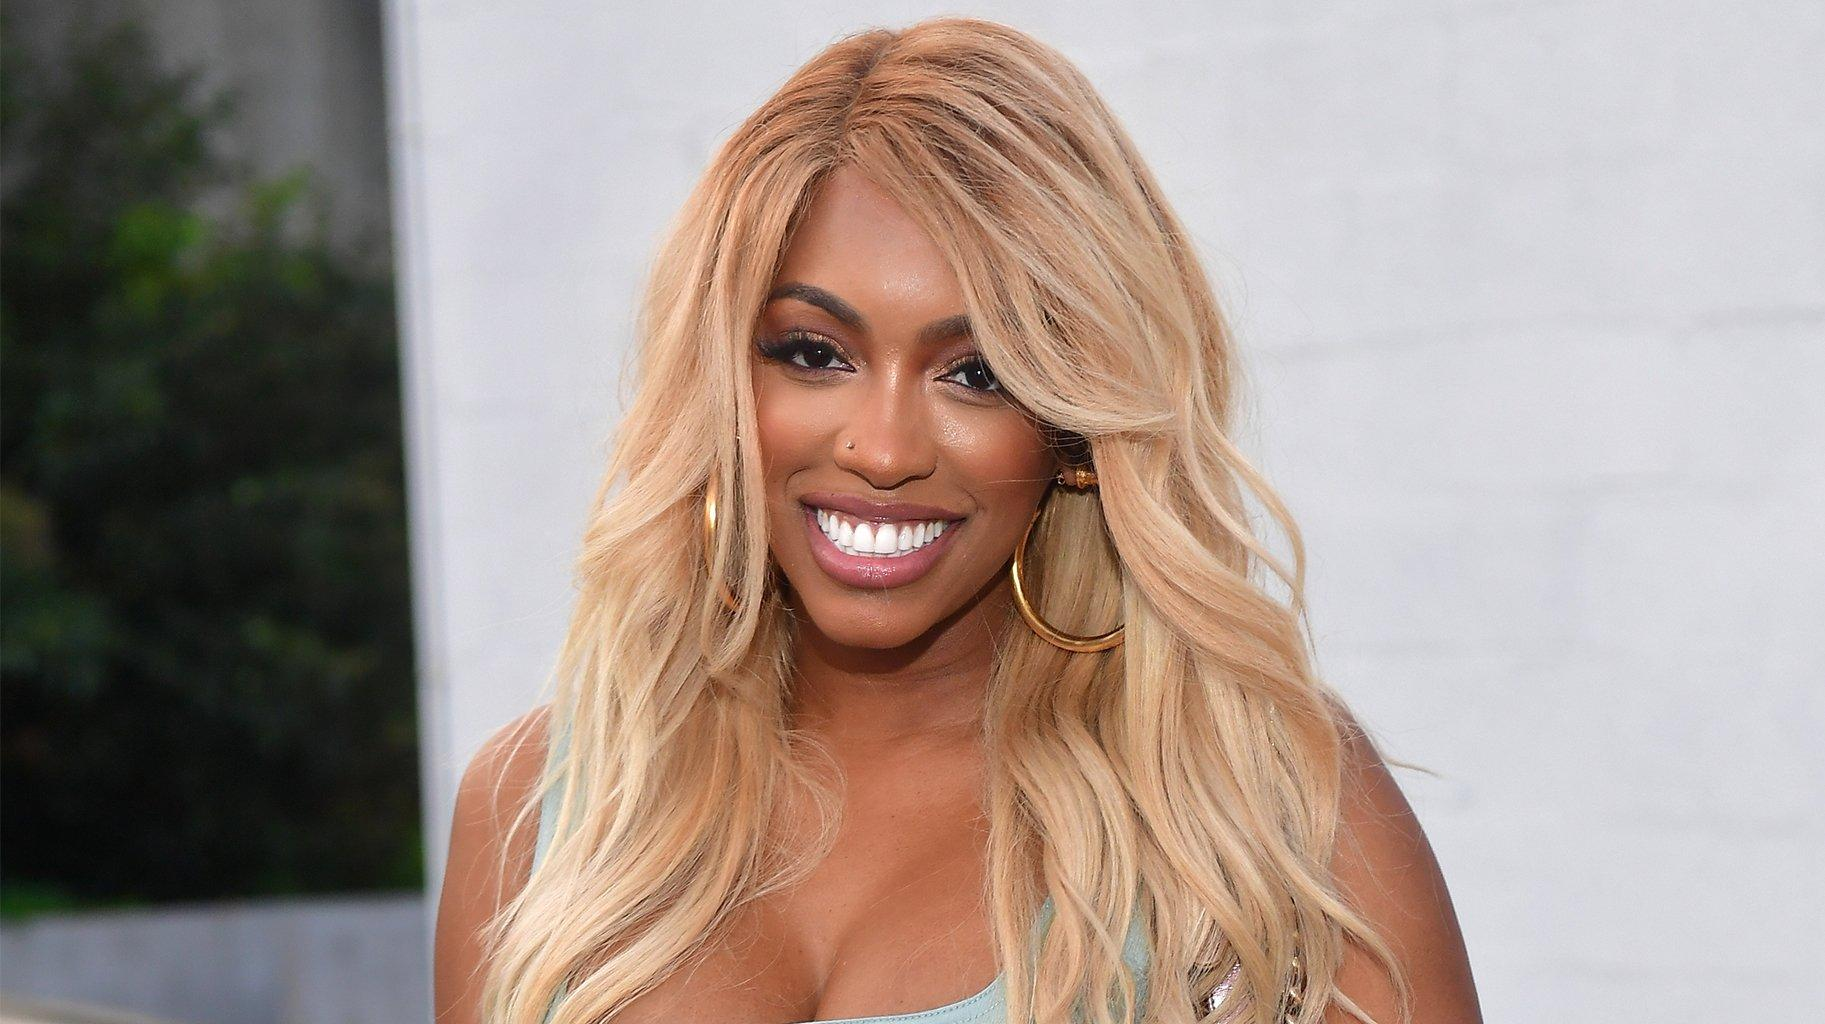 Porsha Williams Flaunts Her Jaw-Dropping Curves In This Amazing Red Dress - See Her Latest Pics That Have Fans Drooling